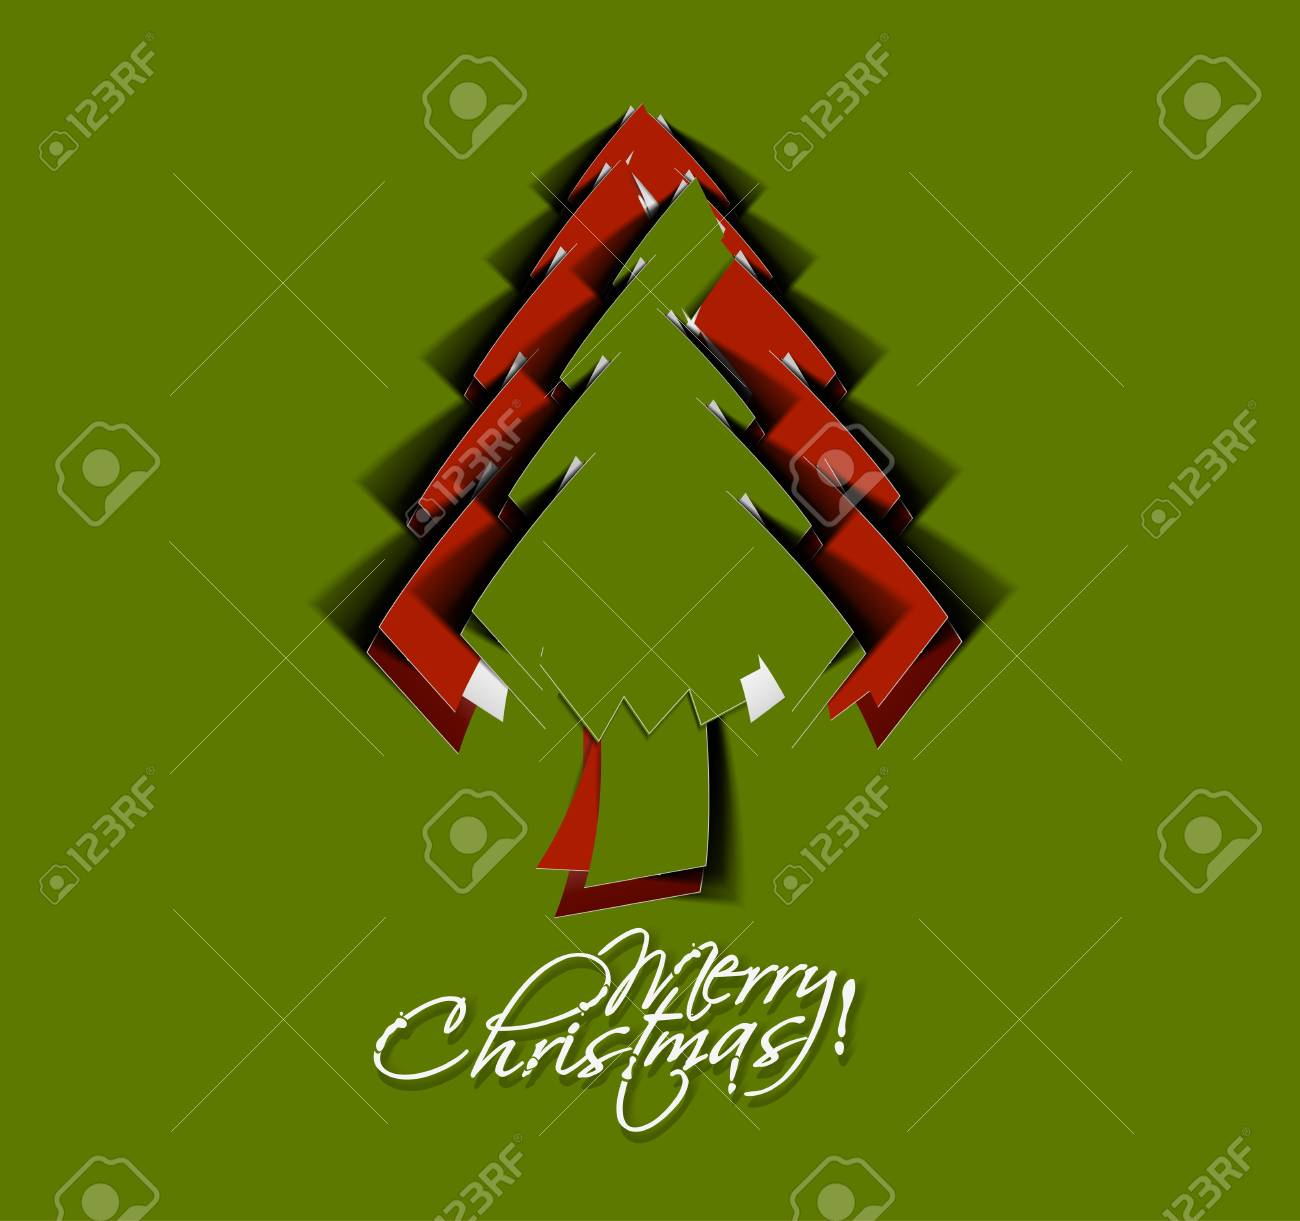 Modern christmas tree background illustration Stock Vector - 16818837